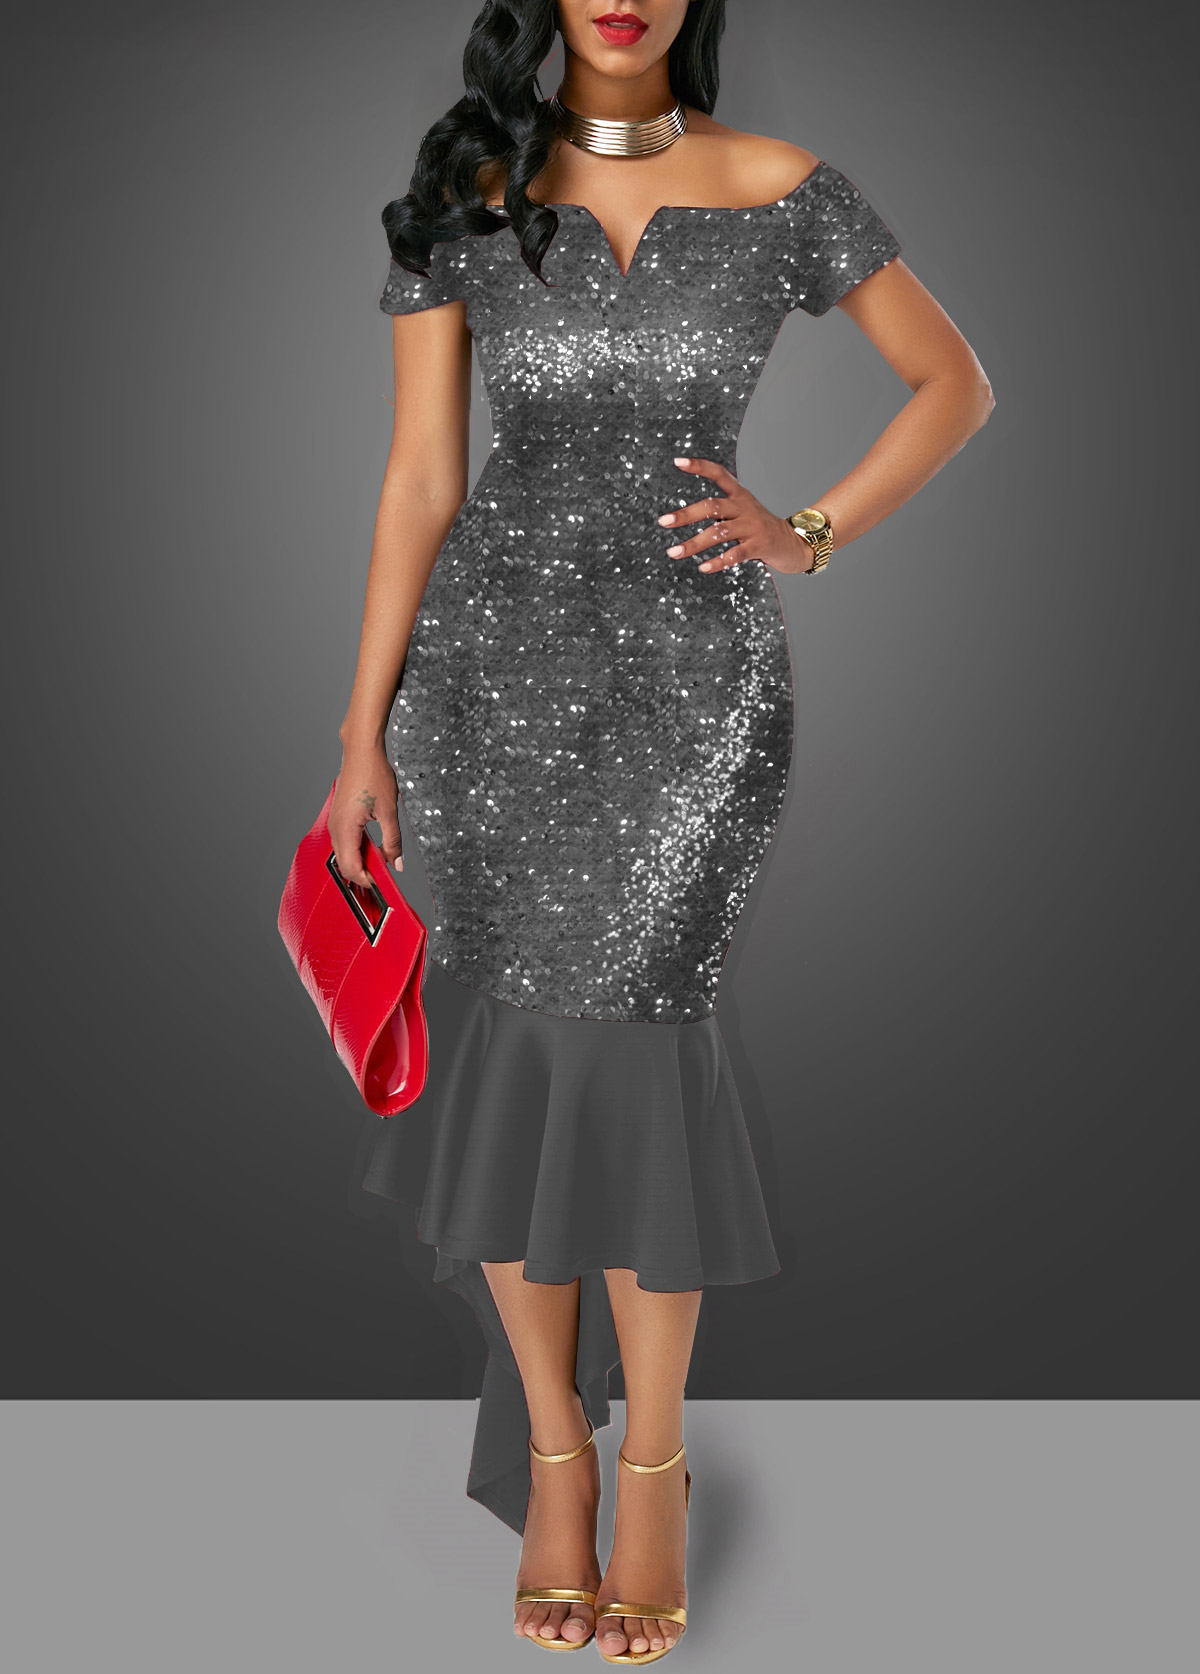 Off the Shoulder Sequin Embellished Dark Grey Sheath Dress